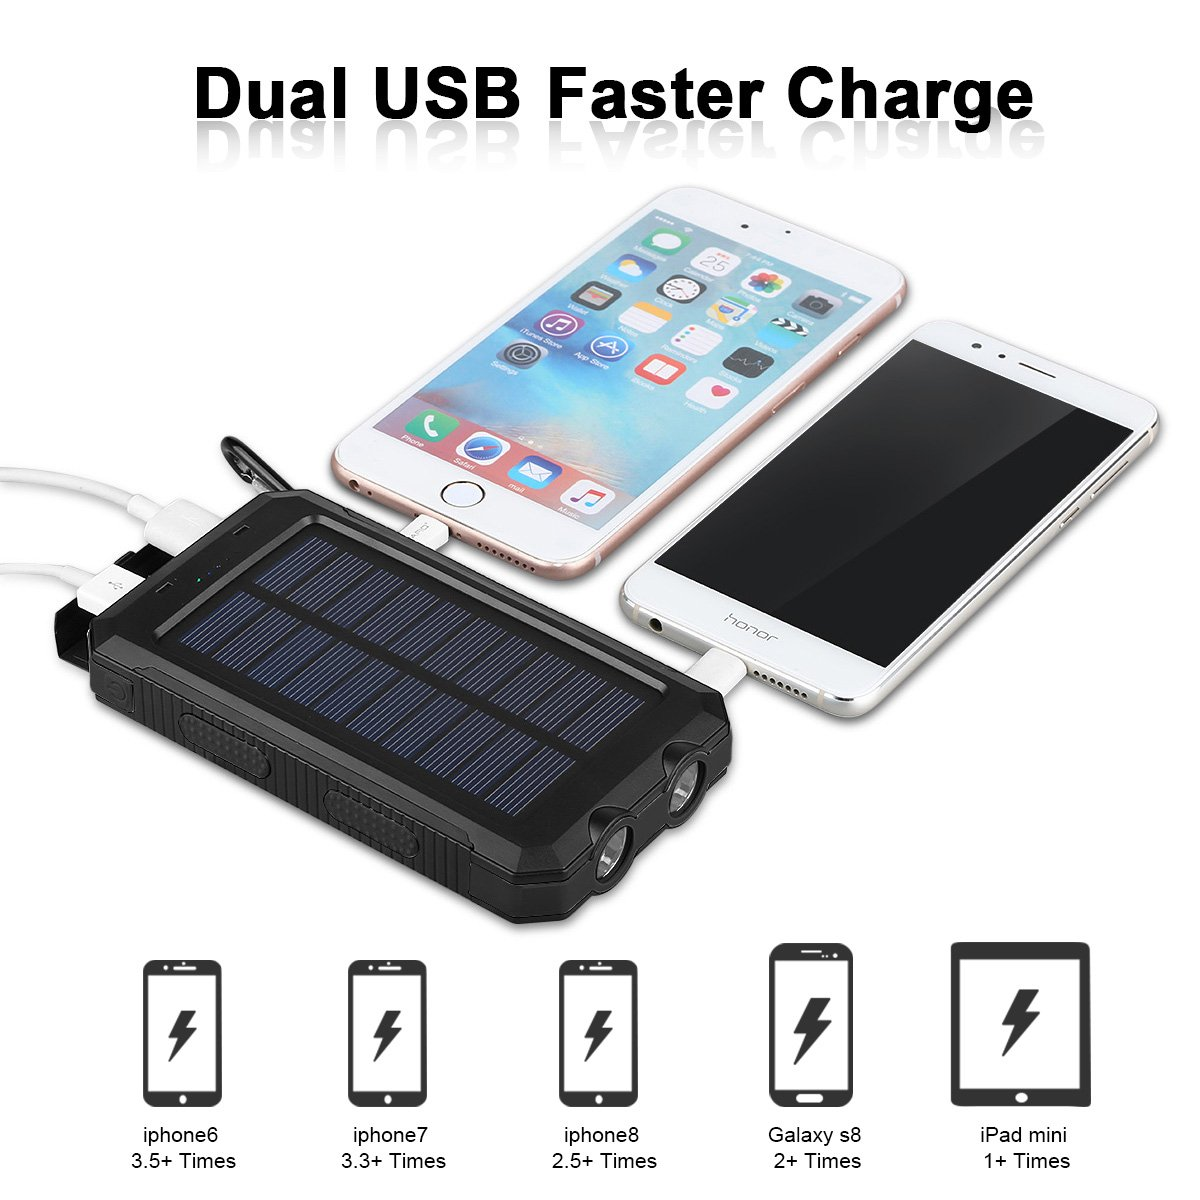 FLOUREON 10,000mAh Solar Charger Power Bank Portable Solar Powered Phone Charger with Dual LED Flashlight Super Bright External Battery Charger with Dual 1.0A/2.1A for iPhone 8/ 8 Plus/ X/ 7/ 6s, Samsung Galaxy S8/ S7/ S6 and More (Black)